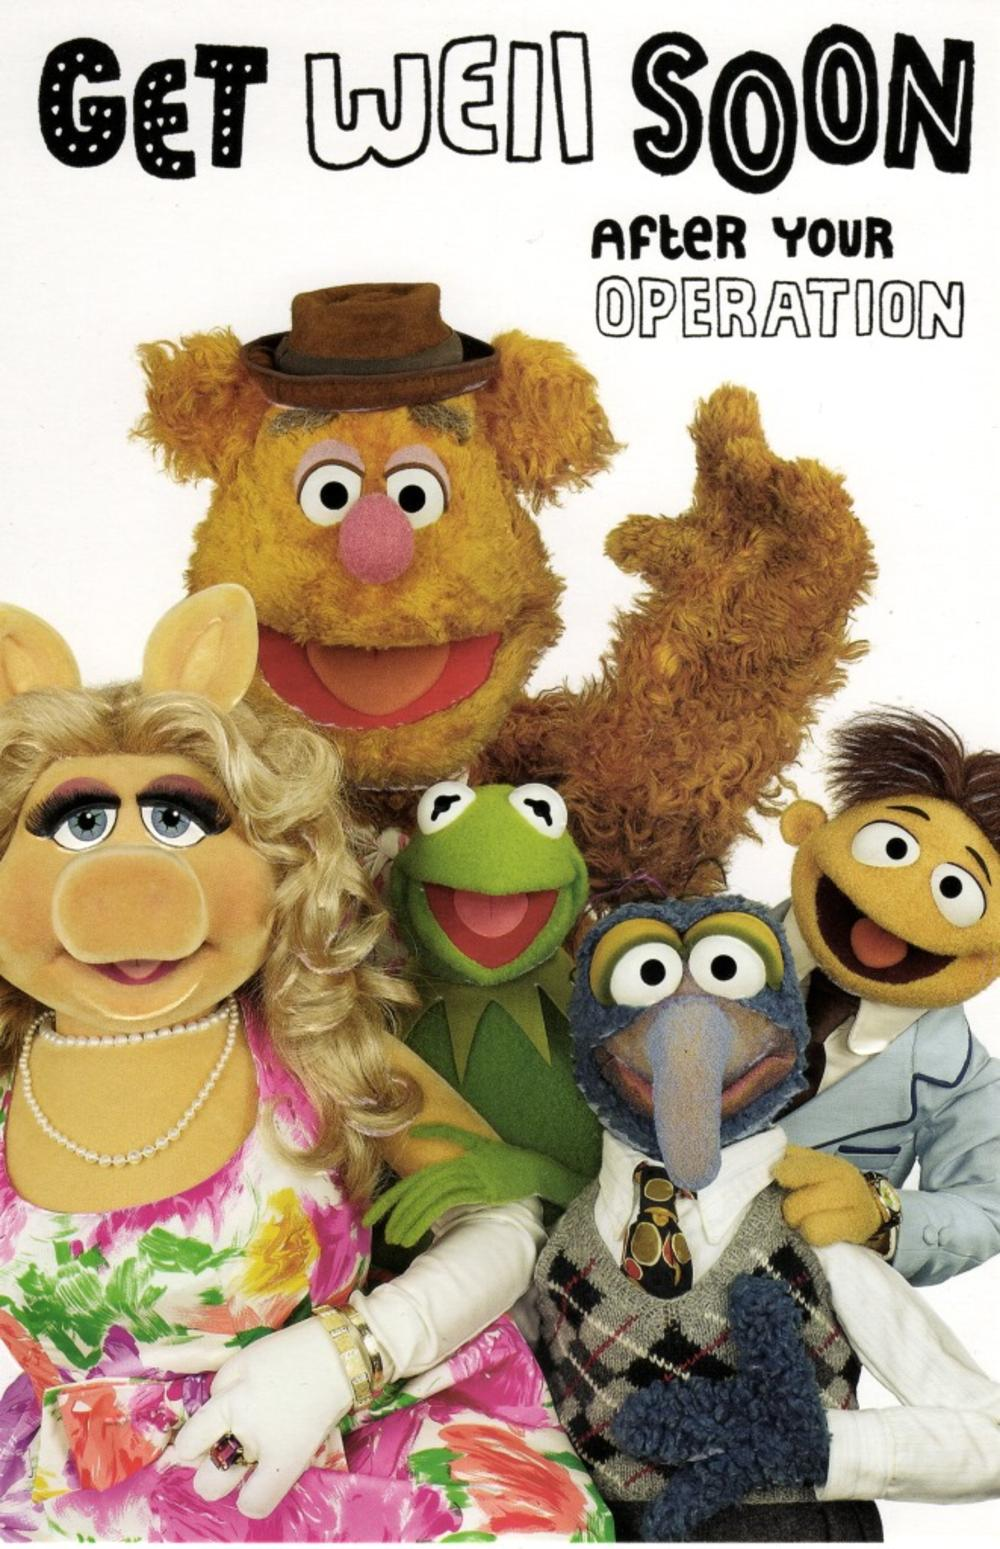 The Muppets Get Well Soon After Operation Card Cards